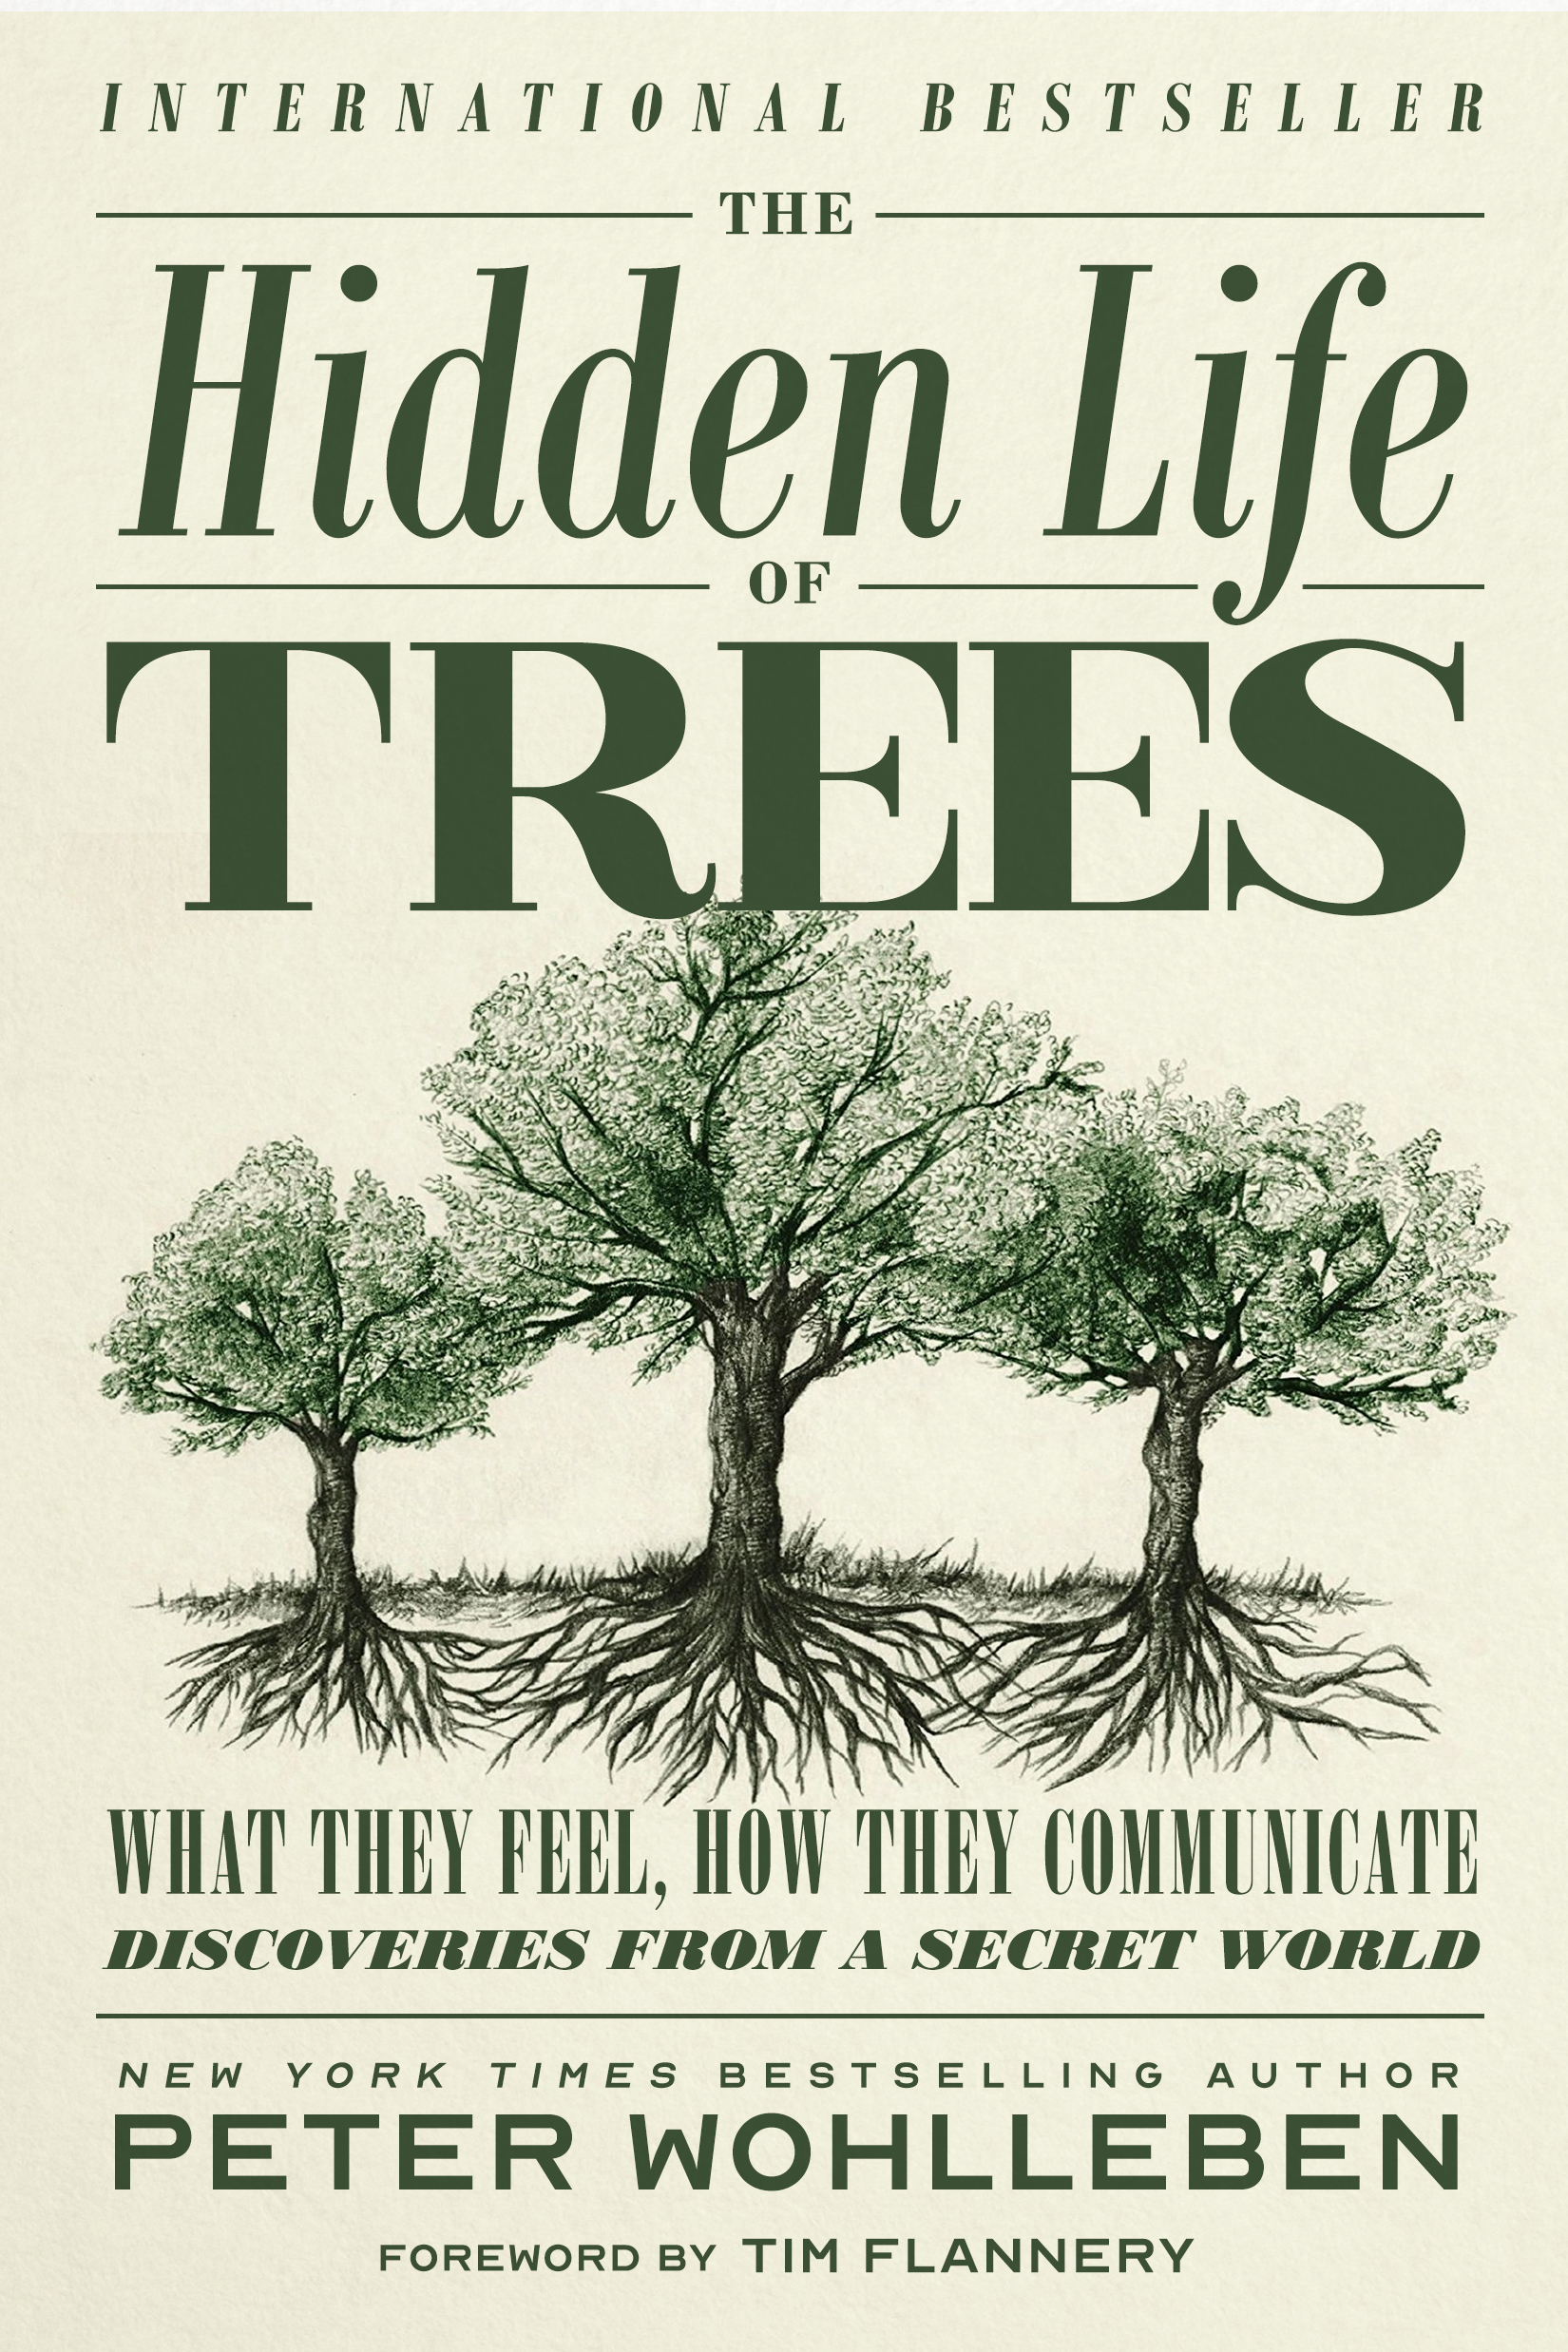 The Hidden Life of Trees by Peter Wohlleben Designed by Ben Mautner for One Hour Covers